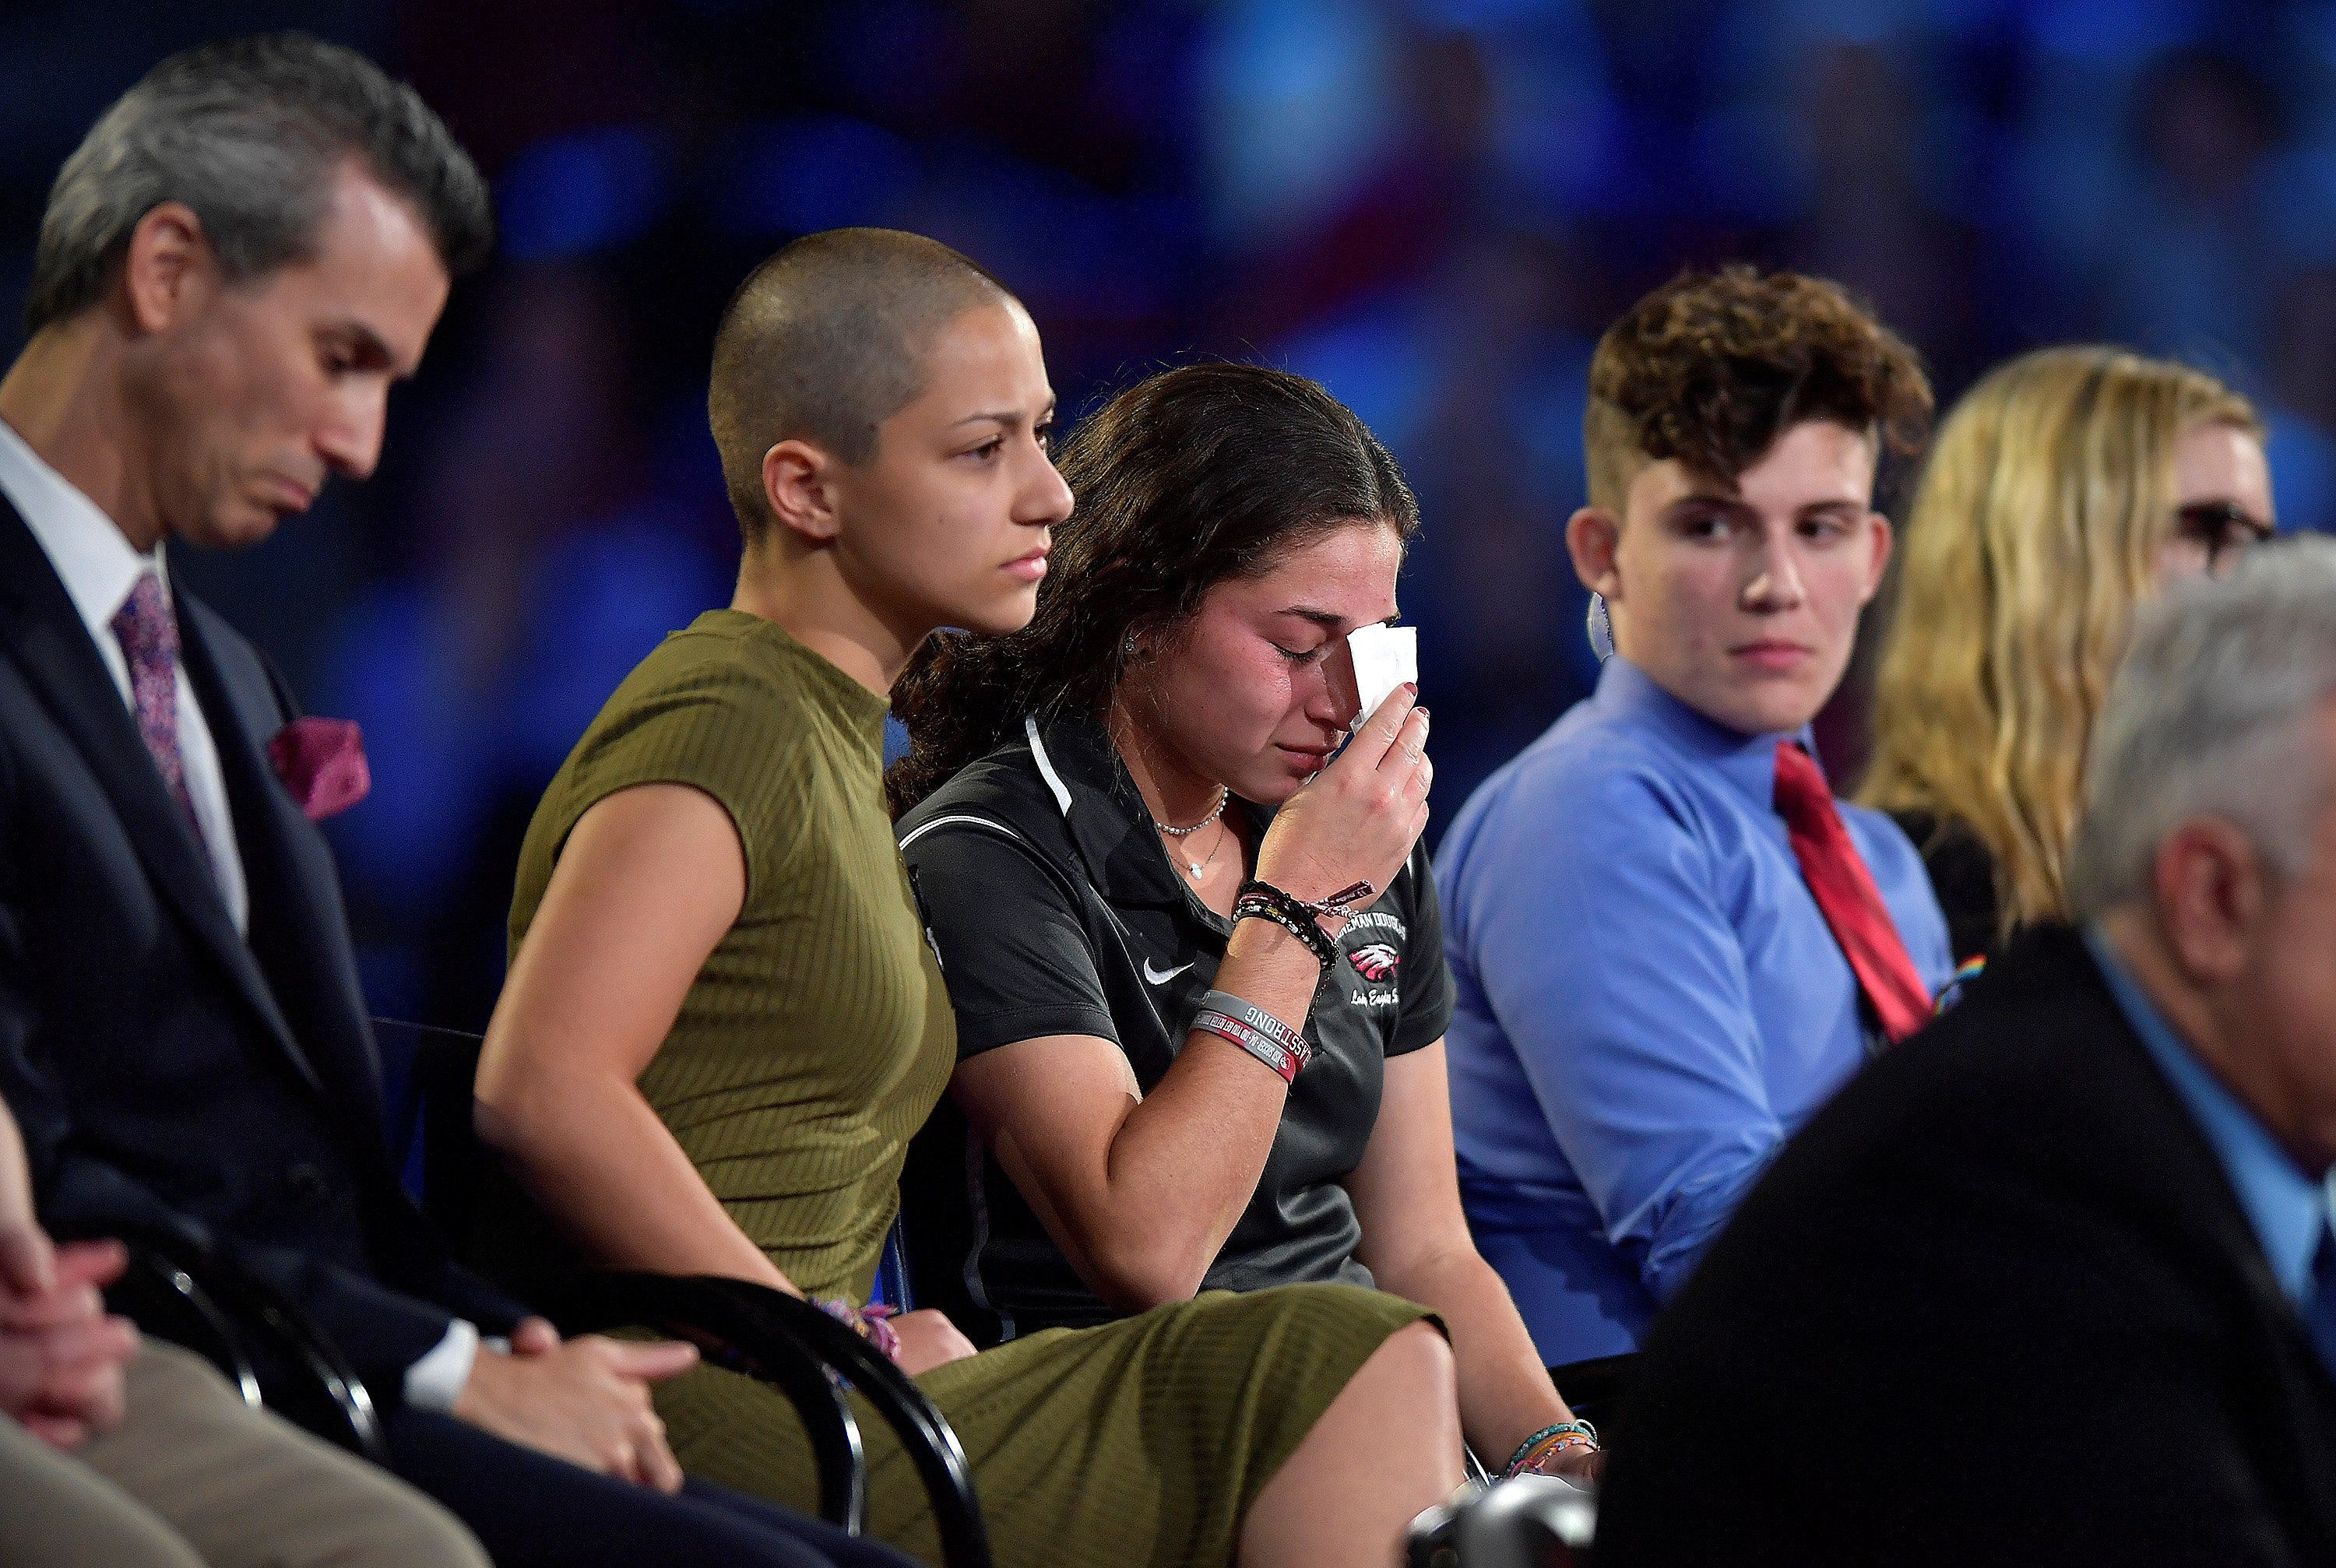 Florida Shooting Survivors Face Down The NRA And Politicians, Vow To Keep